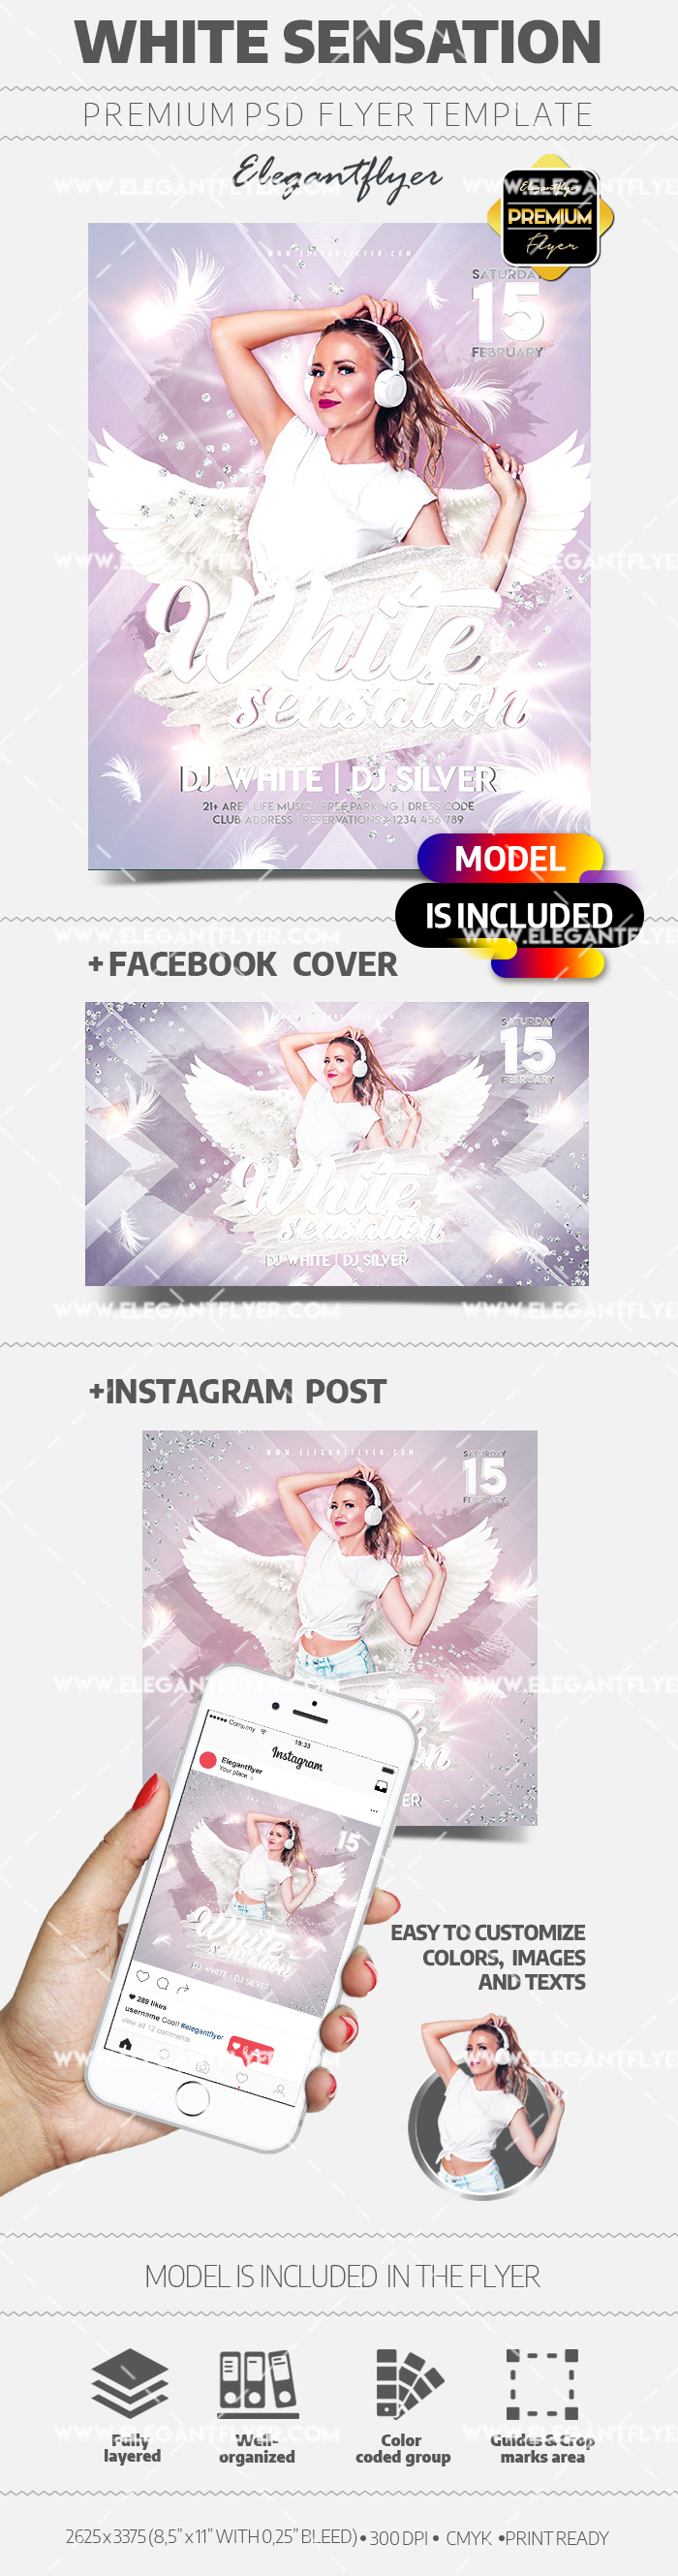 White Sensation Party – PSD Flyer Template + Facebook Cover + Instagram Post